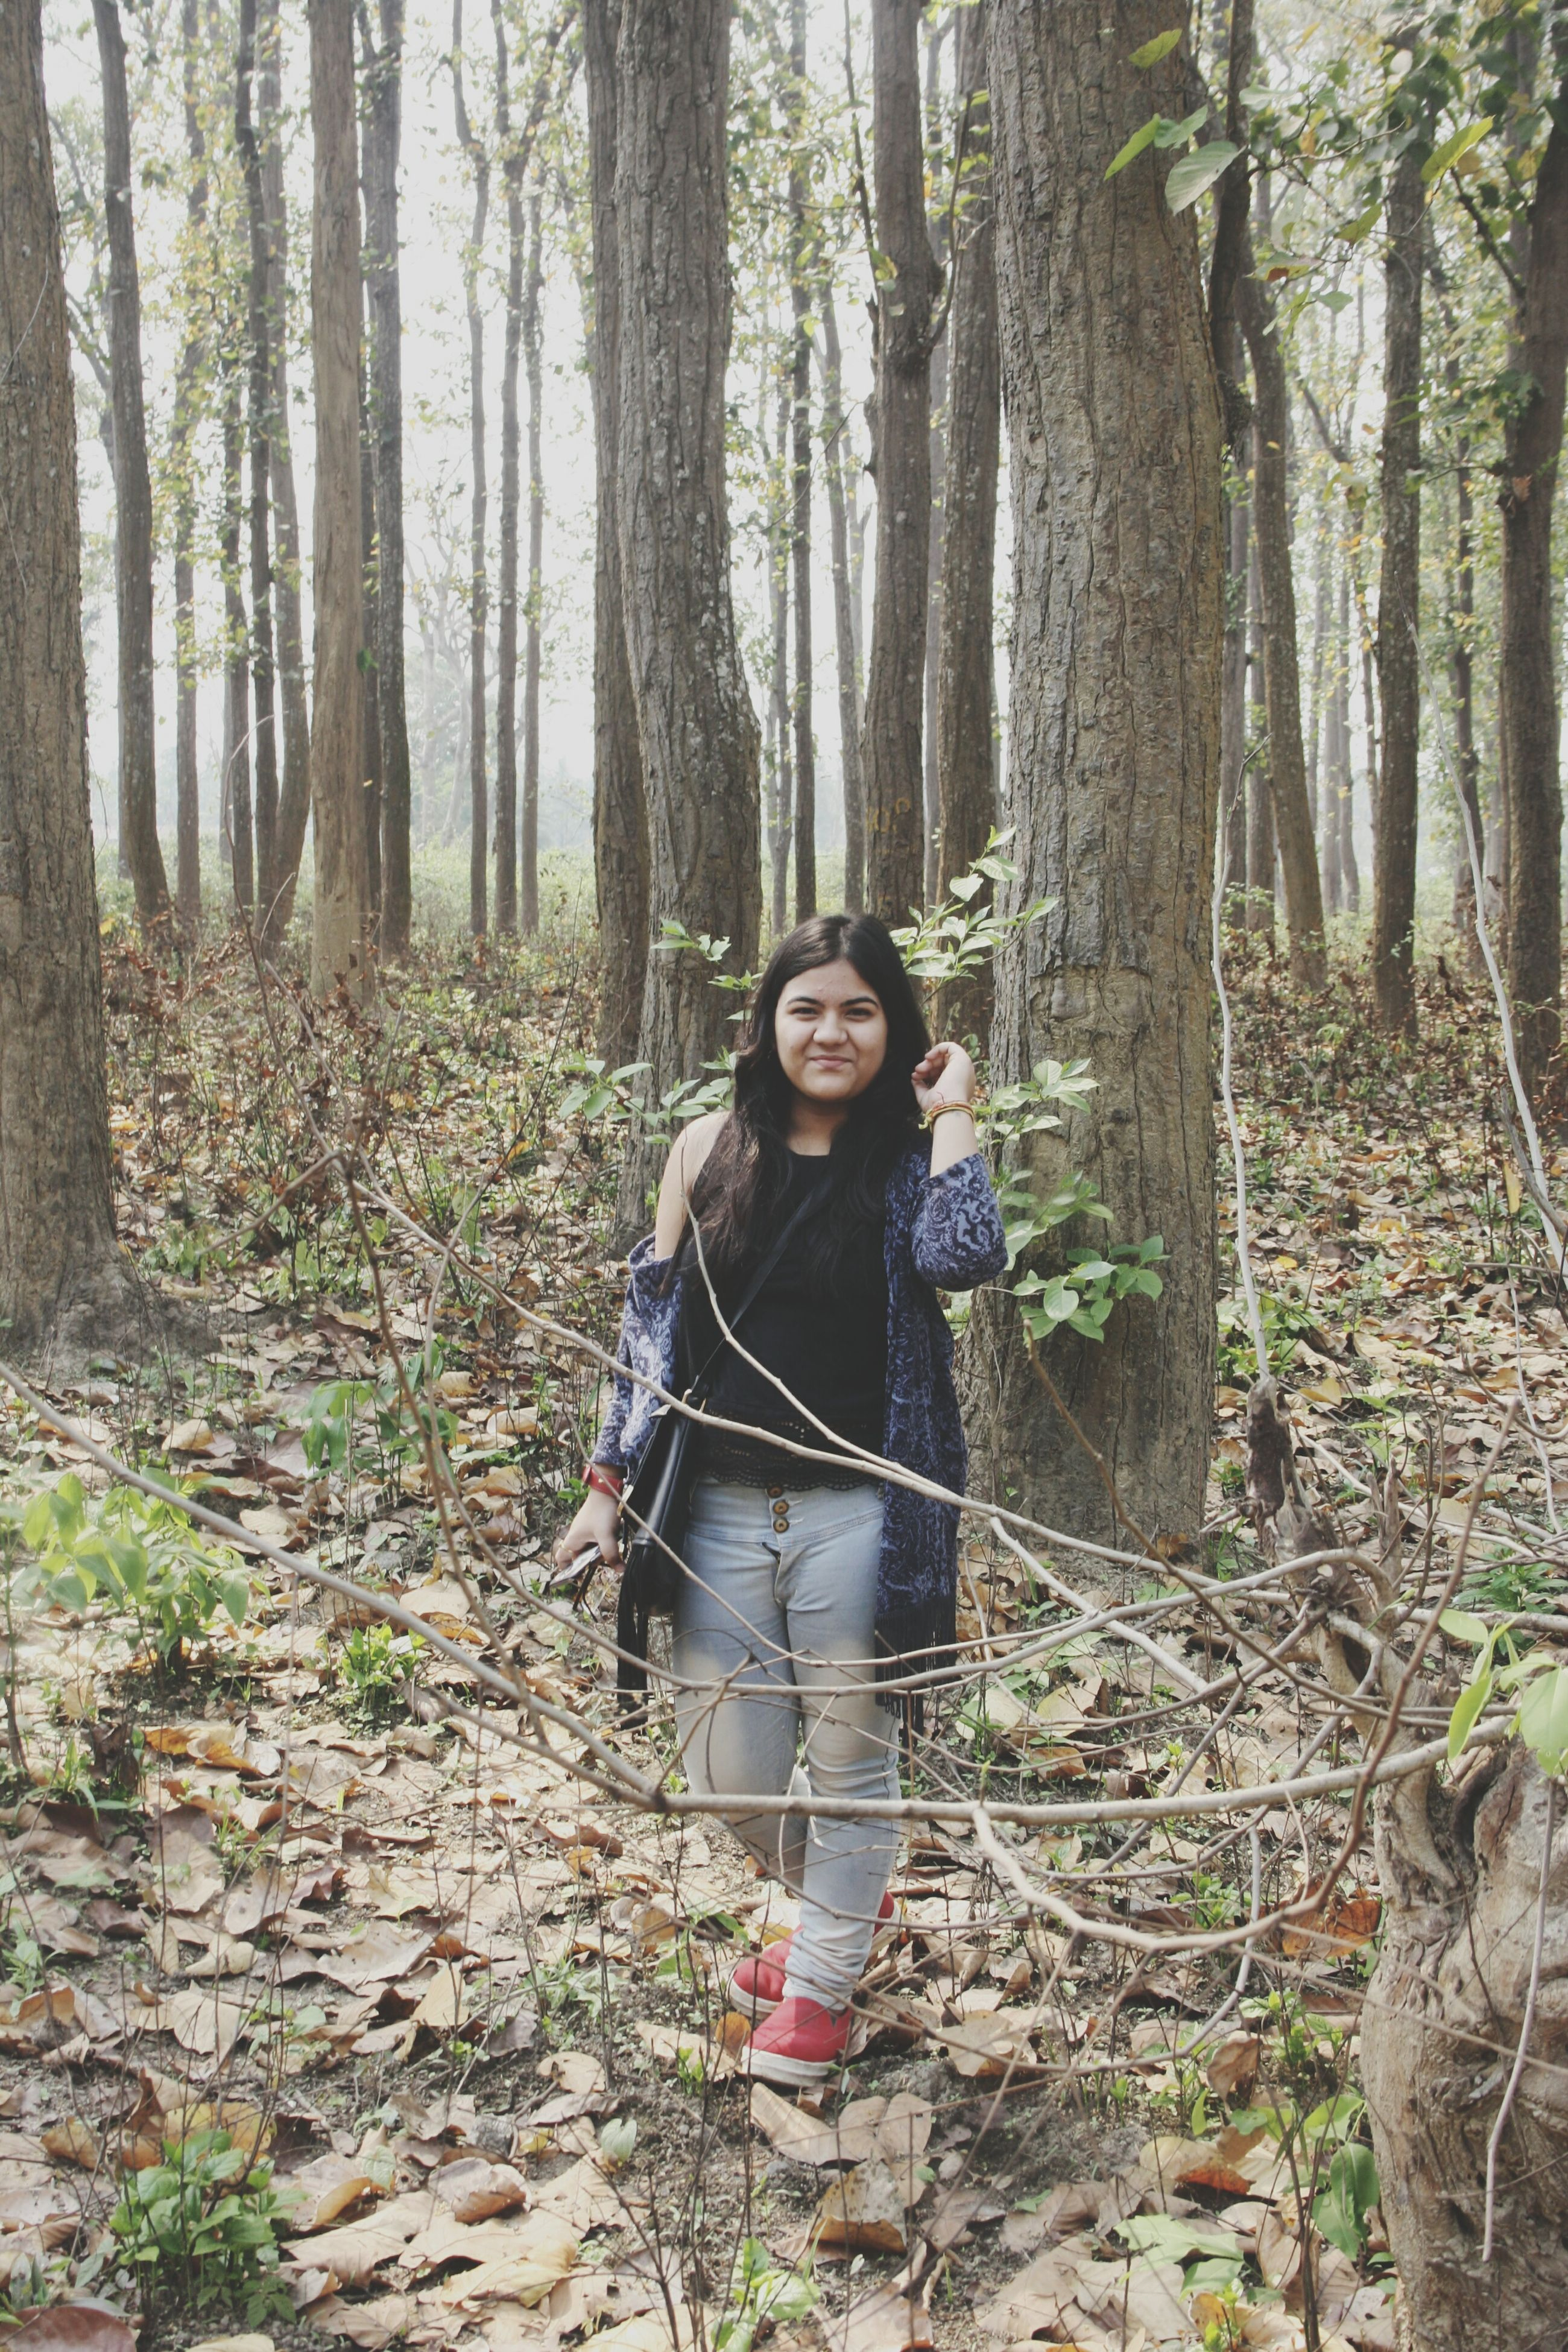 forest, tree, tree trunk, one person, standing, nature, woodland, day, smiling, outdoors, leisure activity, full length, growth, lifestyles, looking at camera, portrait, real people, branch, beauty in nature, young adult, people, adults only, adult